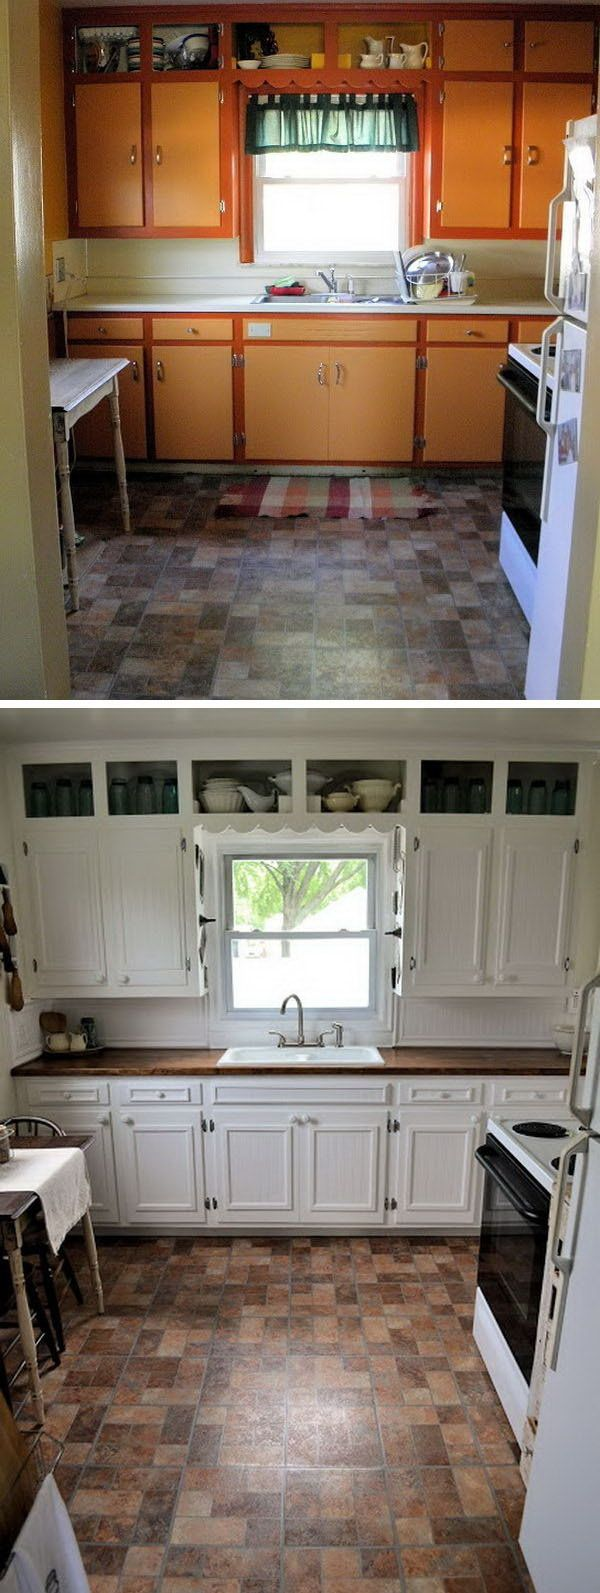 I Love That They Replaced The Cabinet Facing And Replacing Of Wood Counter  Tops Which Gives A Worm And Rustic Look Fitting The Tiles Very Much.